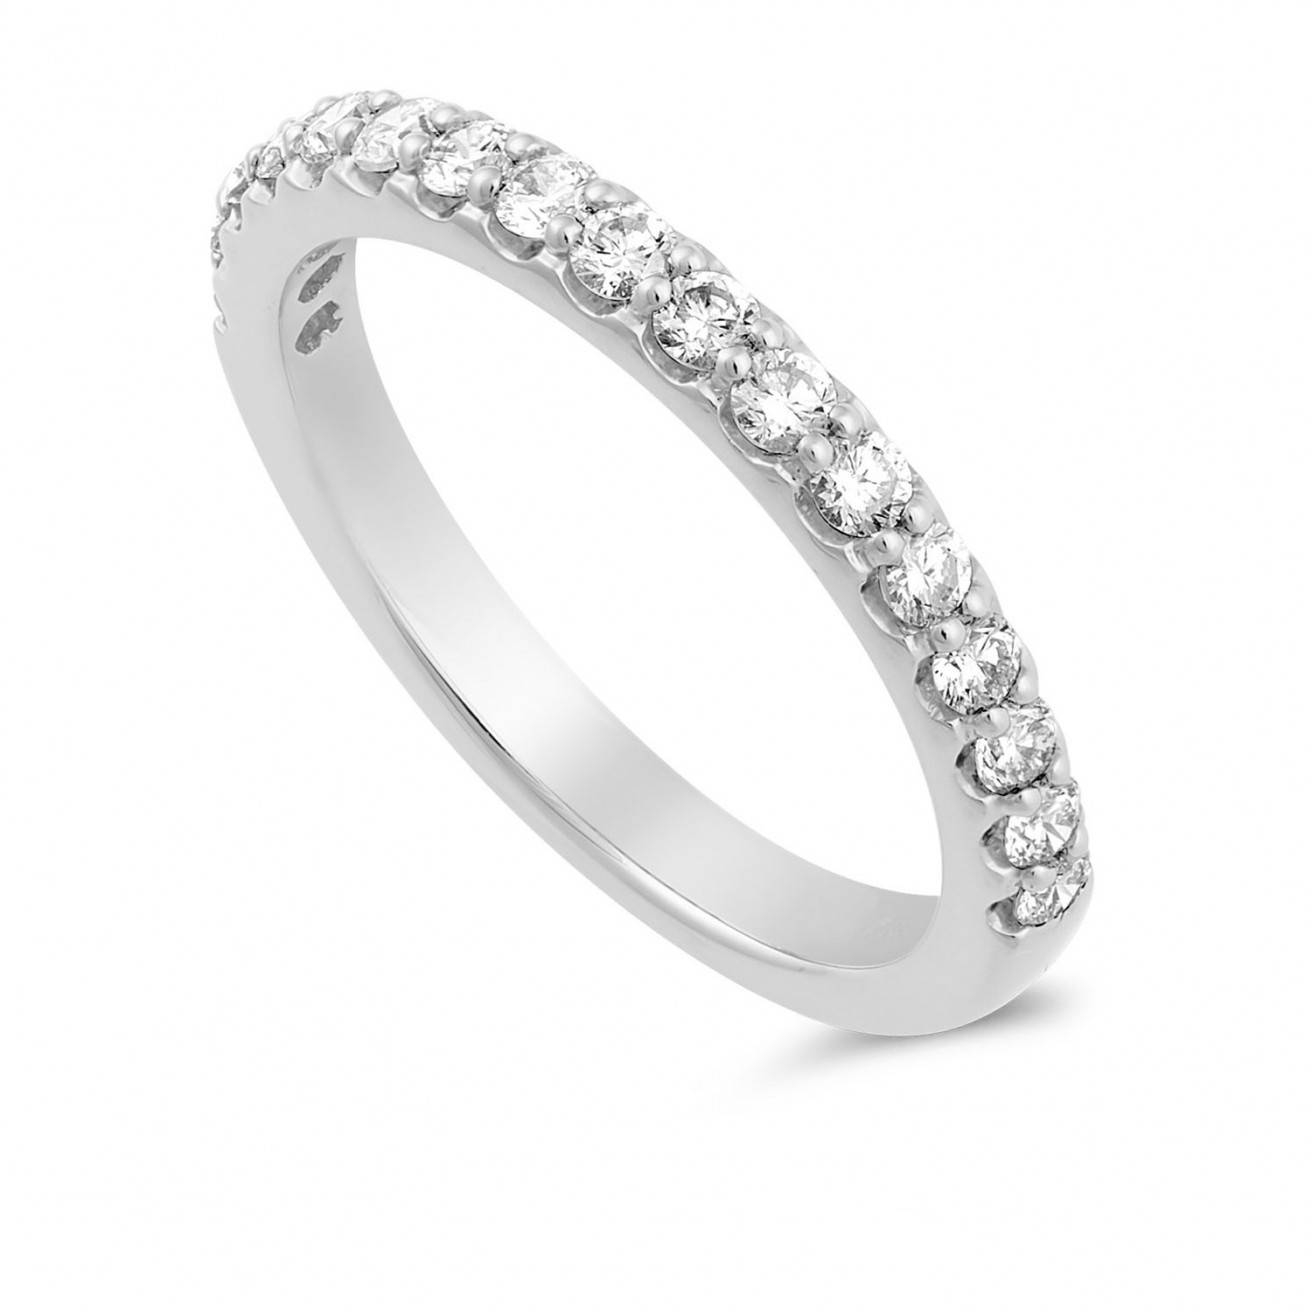 Buy Platinum Wedding Bands Online – Fraser Hart In Platinum Wedding Bands For Her (View 4 of 15)